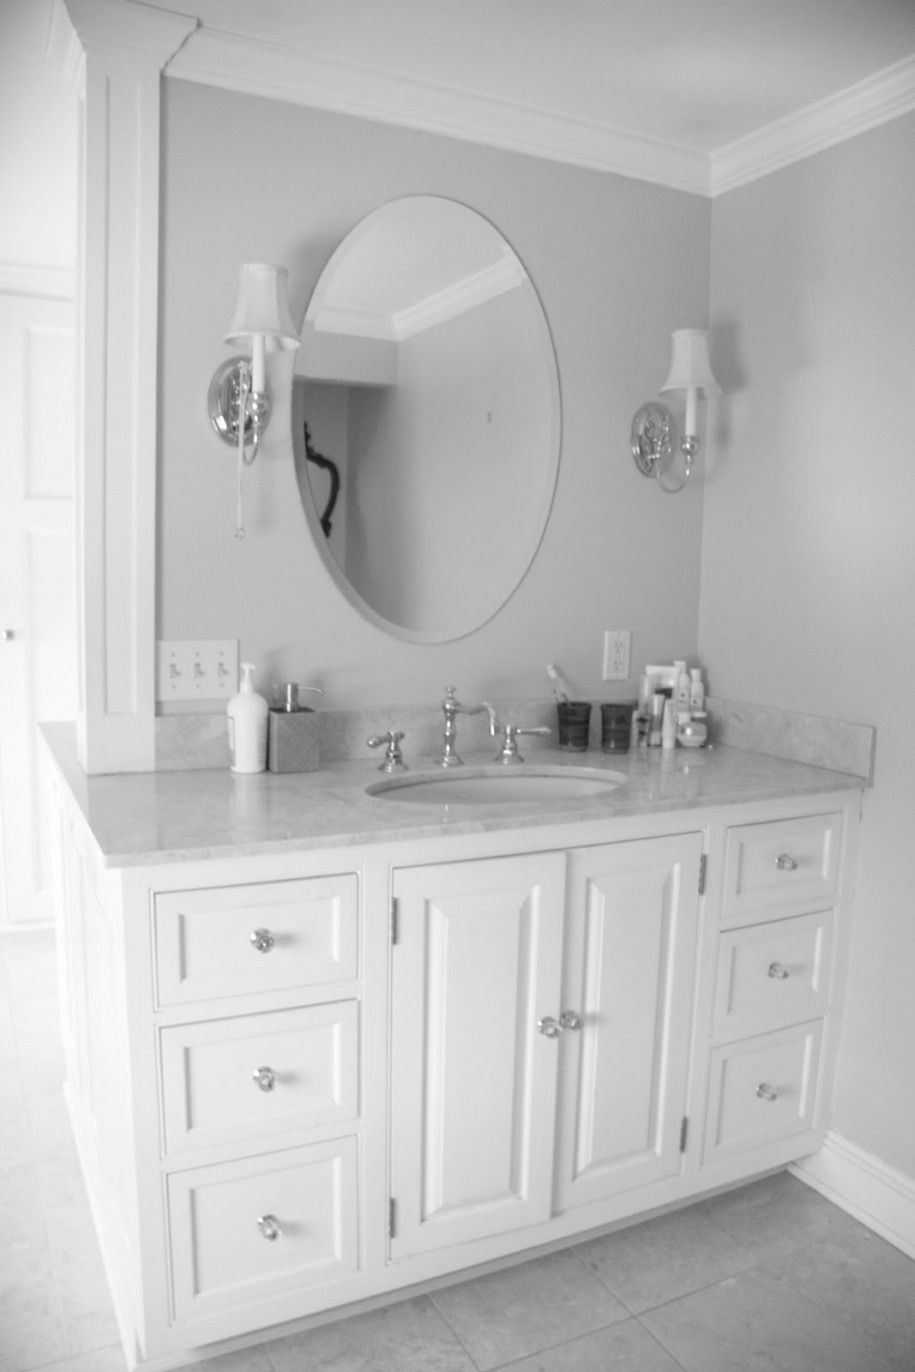 Scandinavian All White Lowes Bathroom Vanities With Compact White Wooden Sink Vanity And Round Fra White Vanity Bathroom Lowes Bathroom Vanity Elegant Bathroom